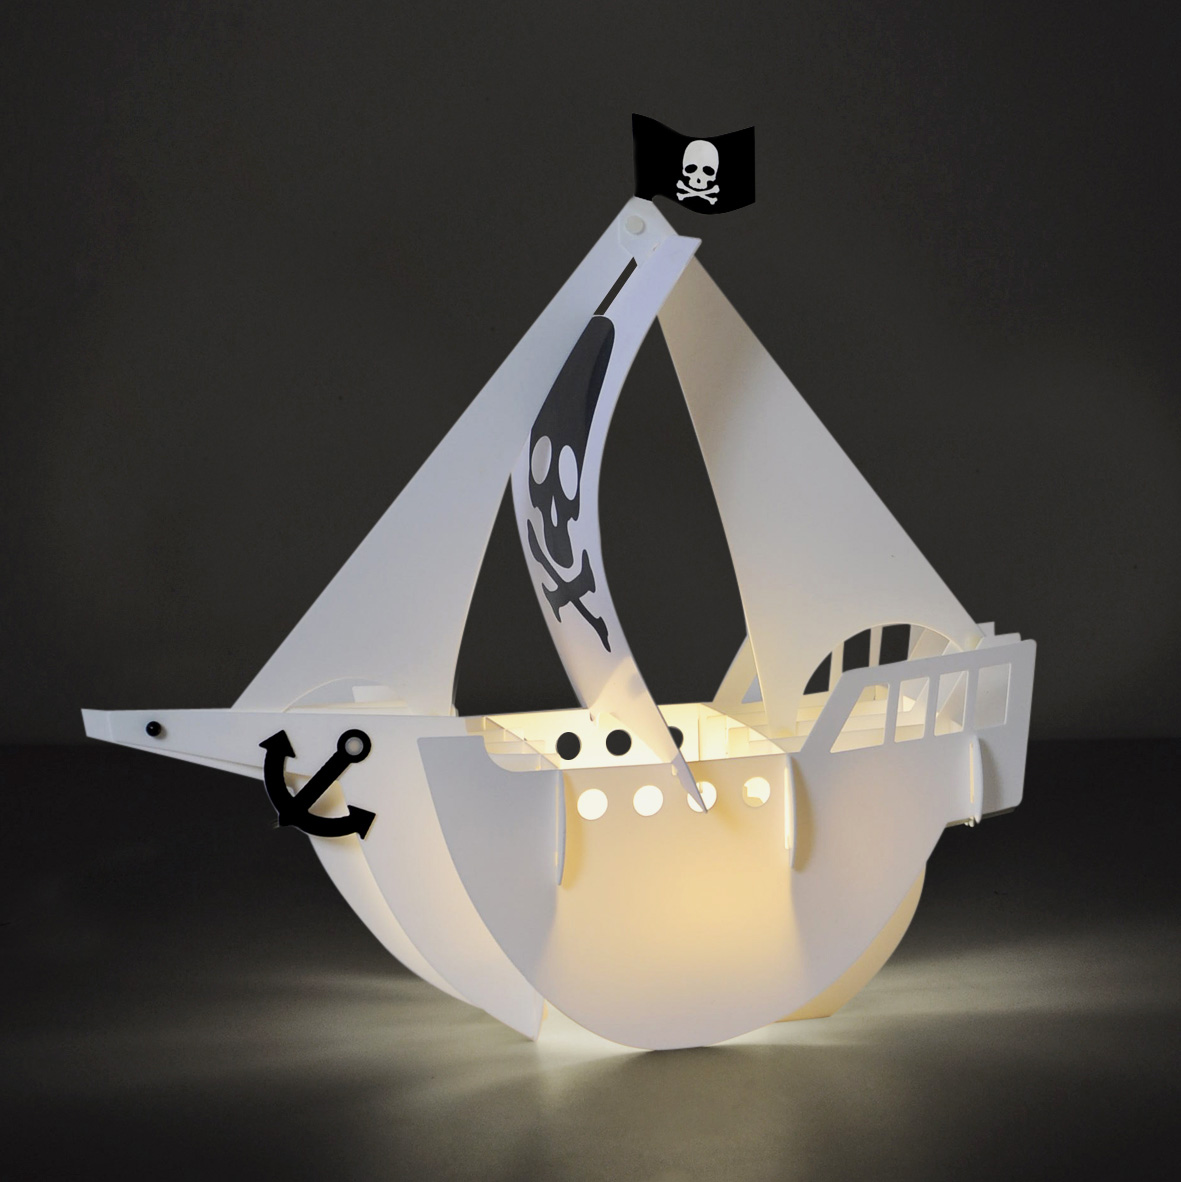 Boys Lights Boys Kids Bedroom Battery Led Pirate Ship Boat Table Lamp